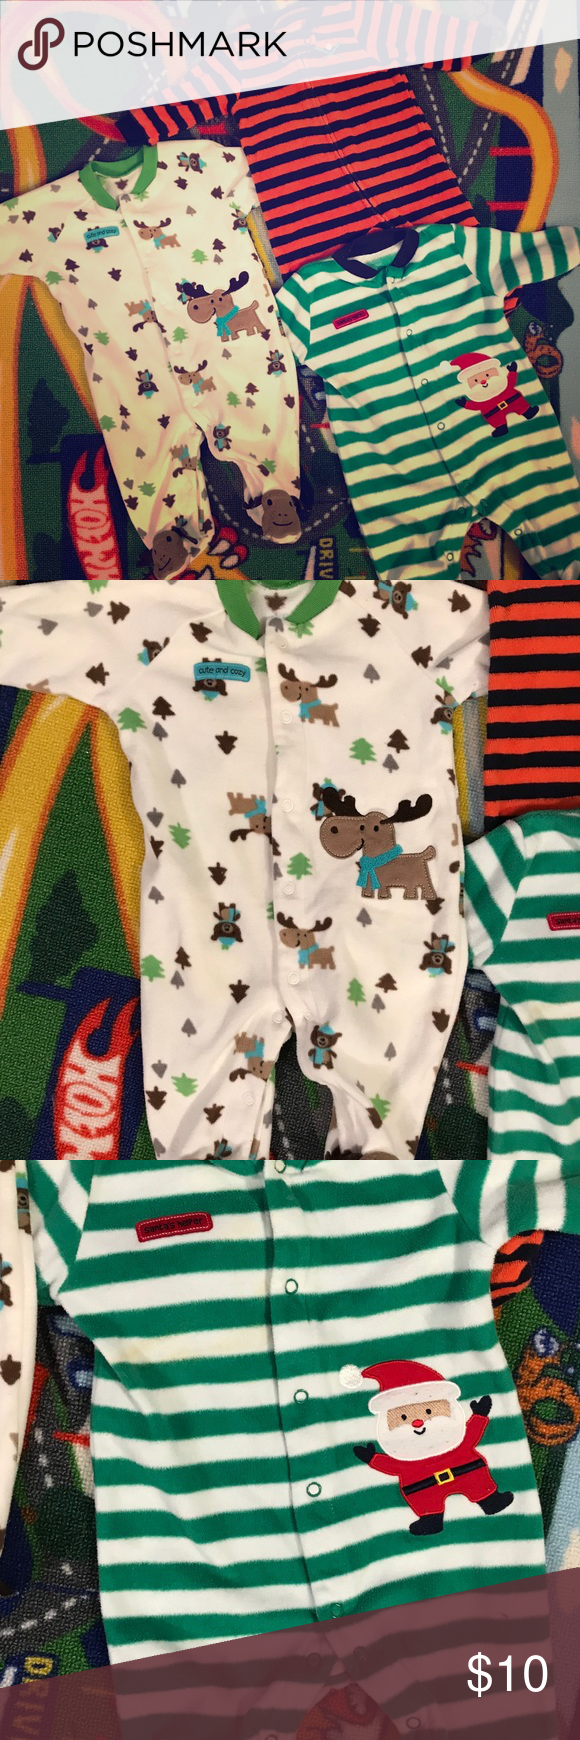 0 3 Month Baby Boy Pajamas Euc Baby Boy 0 3 Month Sleepers Made By Carter S Three Pairs Of Warm Pajamas Baby Boy Pajamas Baby Month By Month Baby Boy Outfits